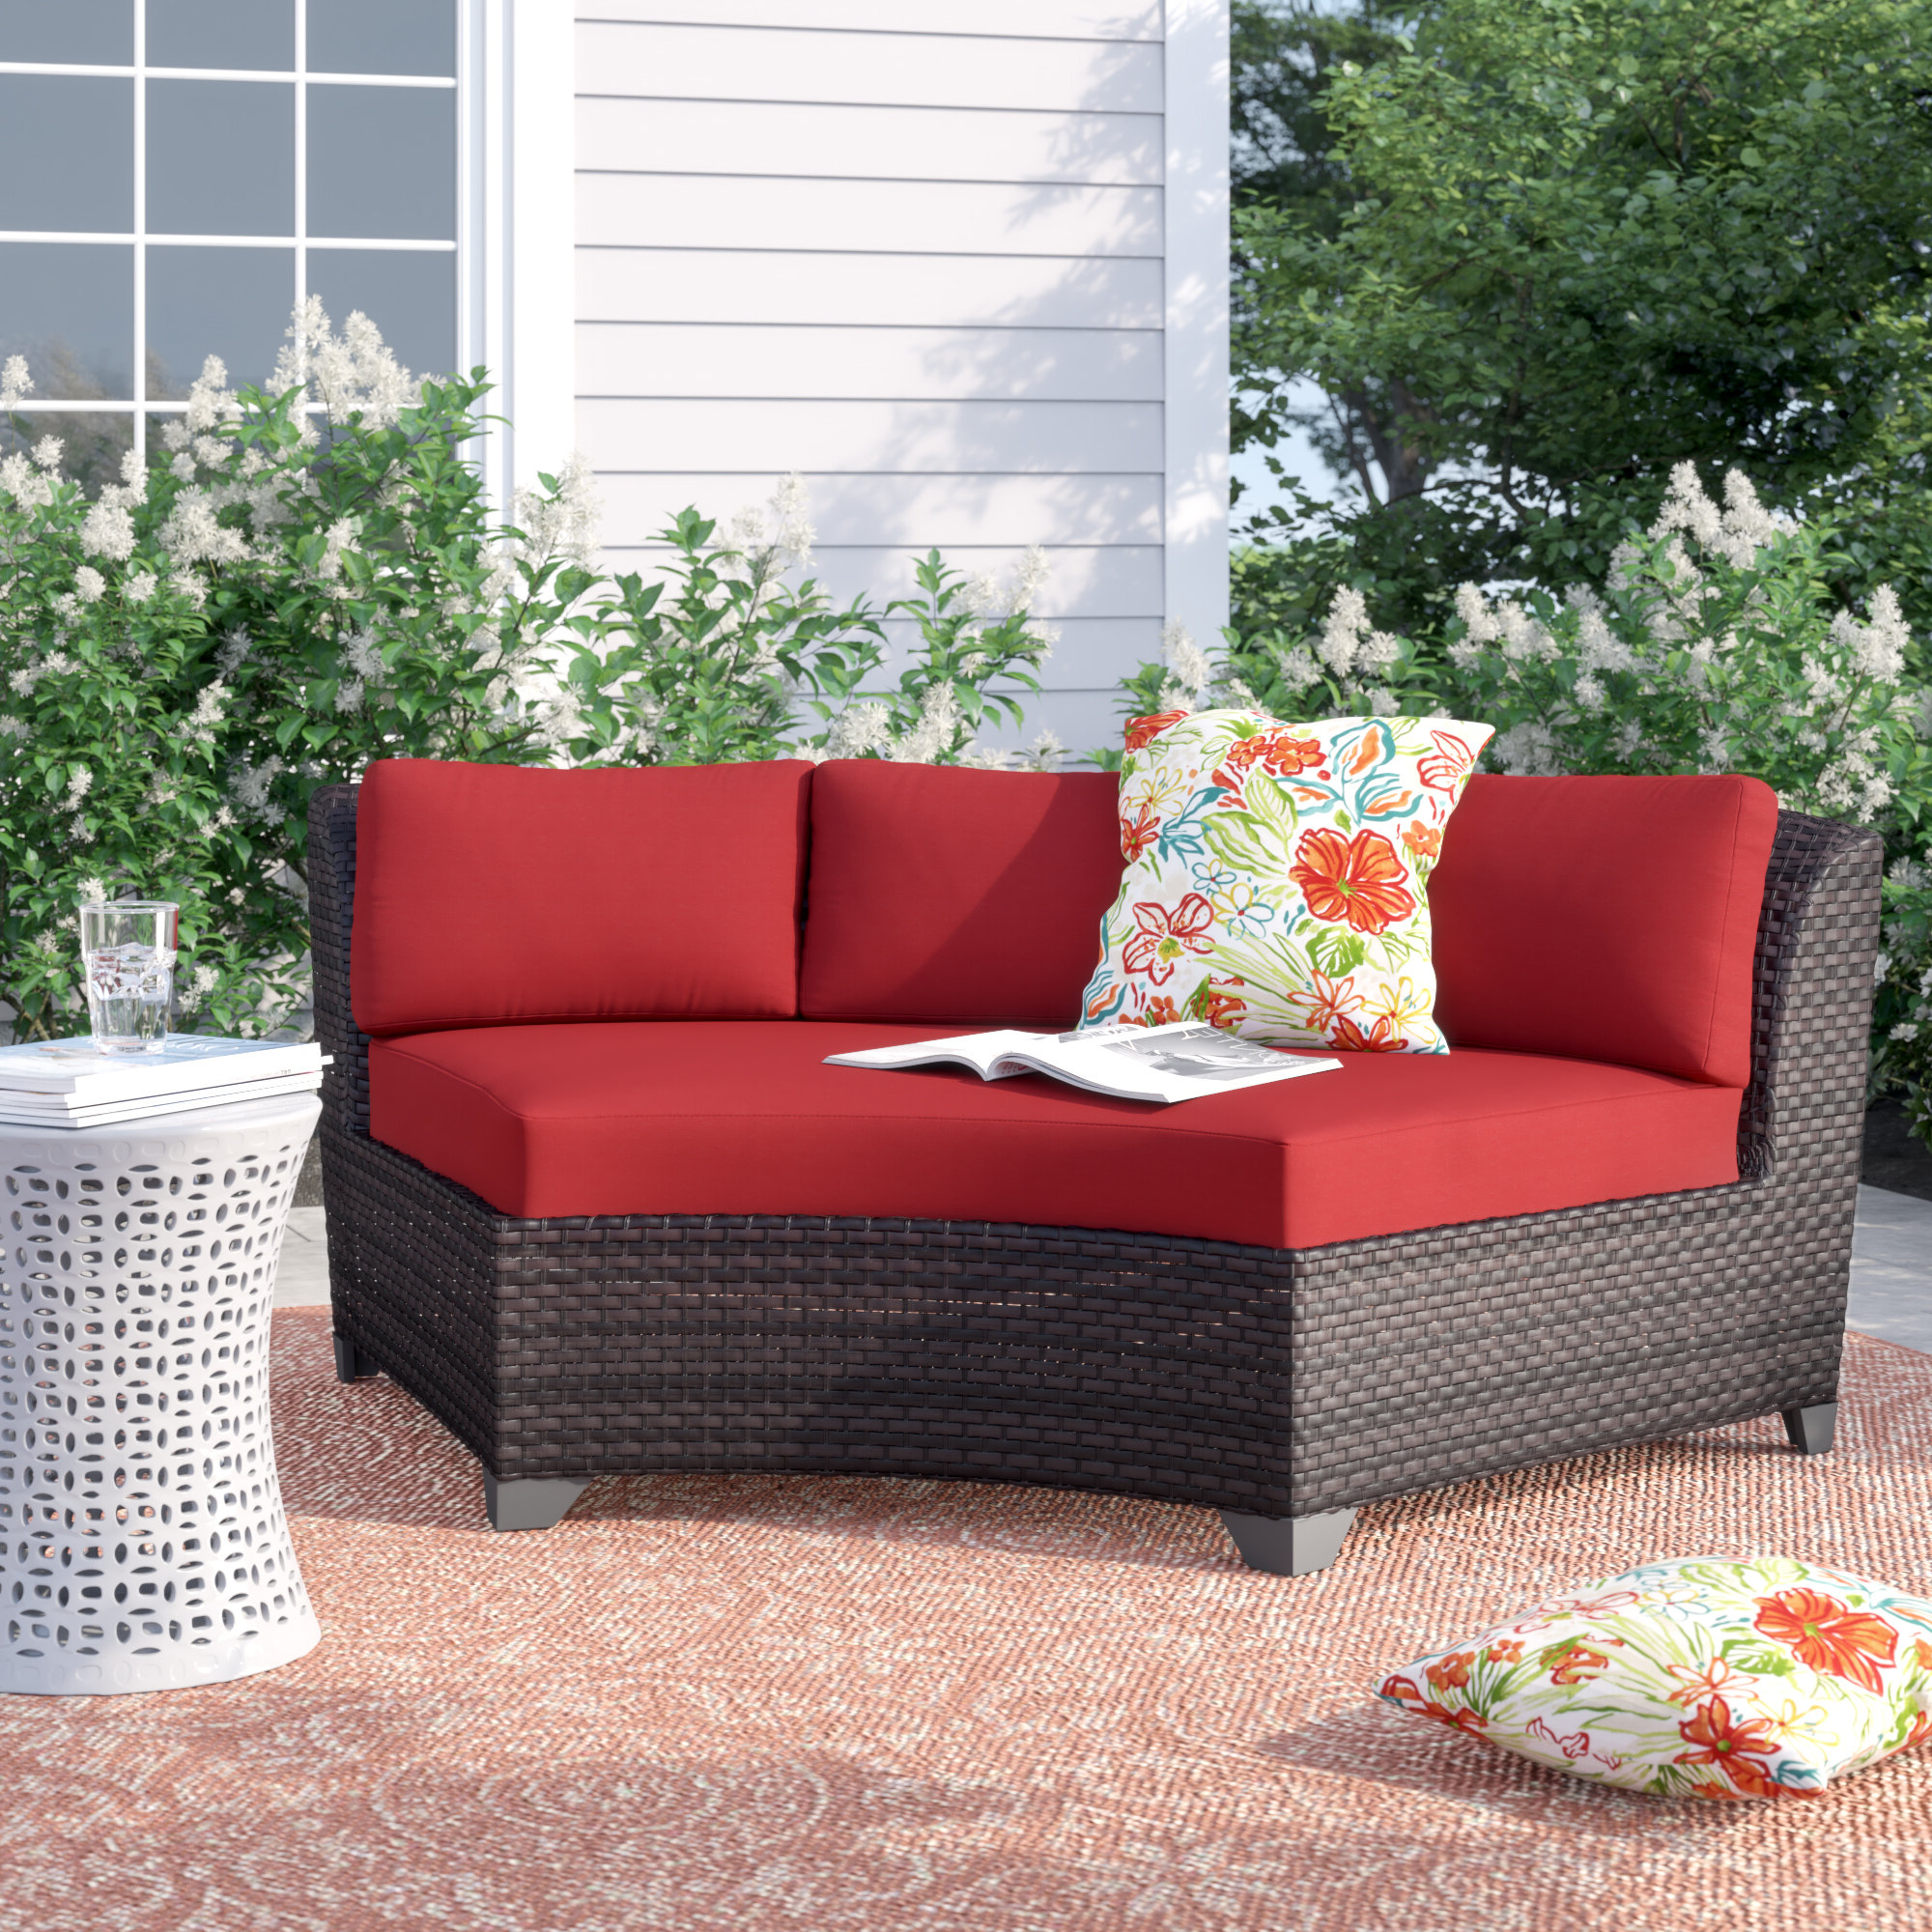 Tegan Patio Sofa With Cushions With Regard To Most Current Fannin Patio Sofas With Cushions (View 2 of 25)